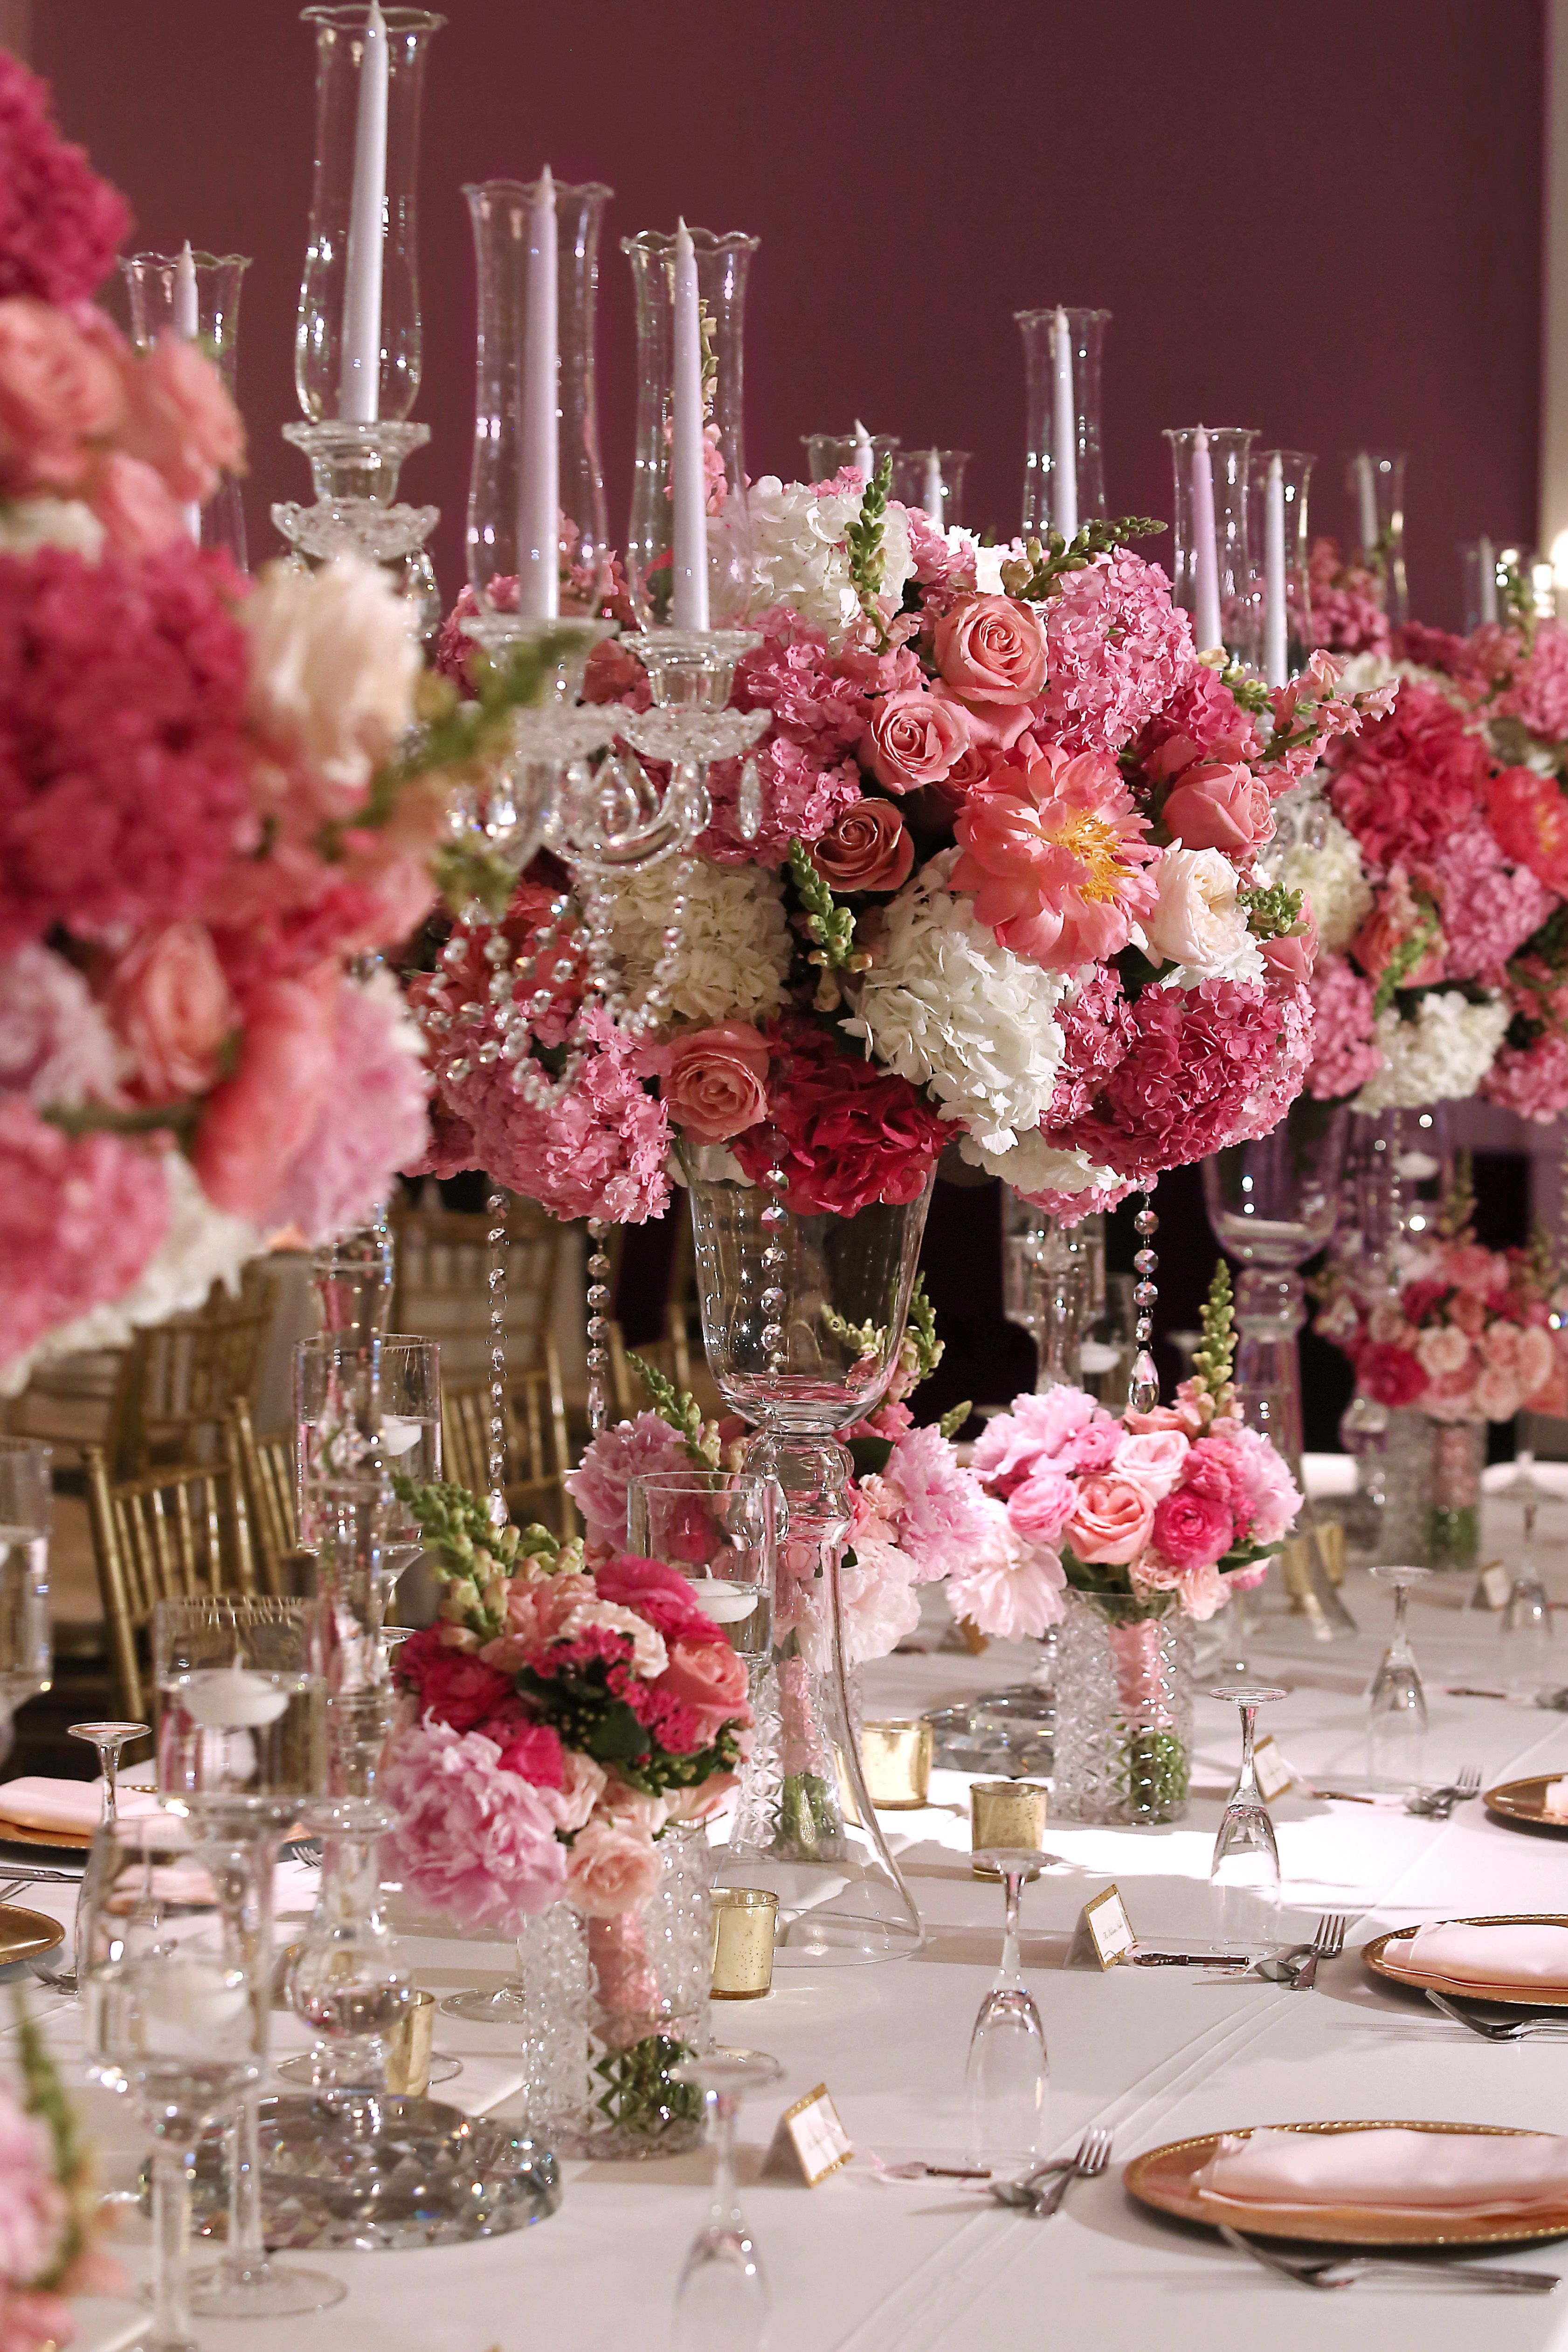 Pretty In Pink Wedding Tall Centerpiece Floral Head Table Luxury Florists Wedding Table Decorations Pink Wedding